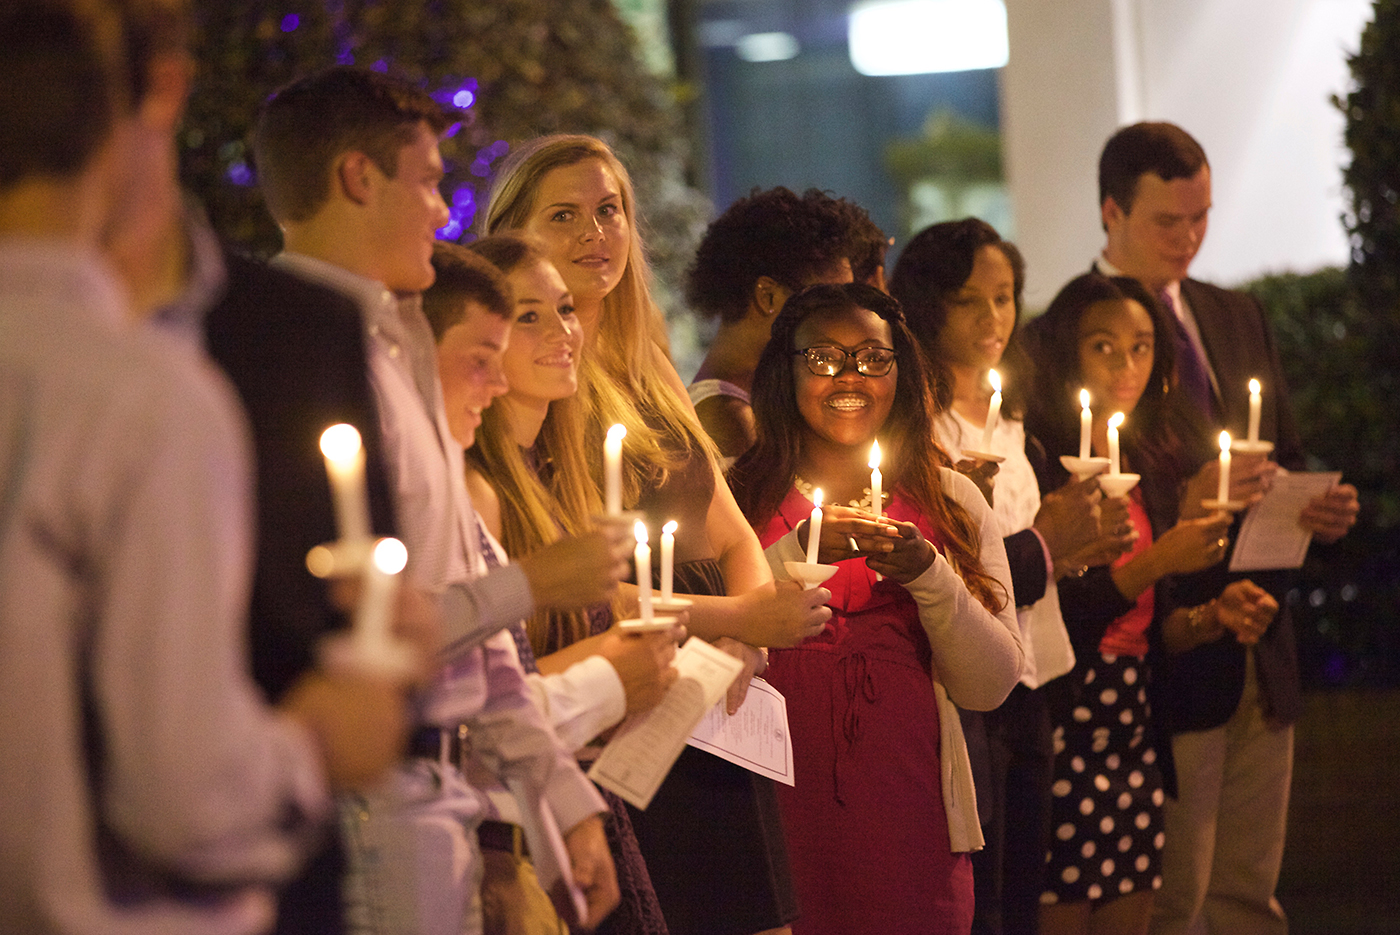 The Fourth Night Ceremony celebrates the arrival of the new student scholars to the Millsaps community. On the fourth night of the students' tenure at the College they pledge to uphold the Student Conduct Code and are challenged to uphold the high standards that Millsaps adheres to.